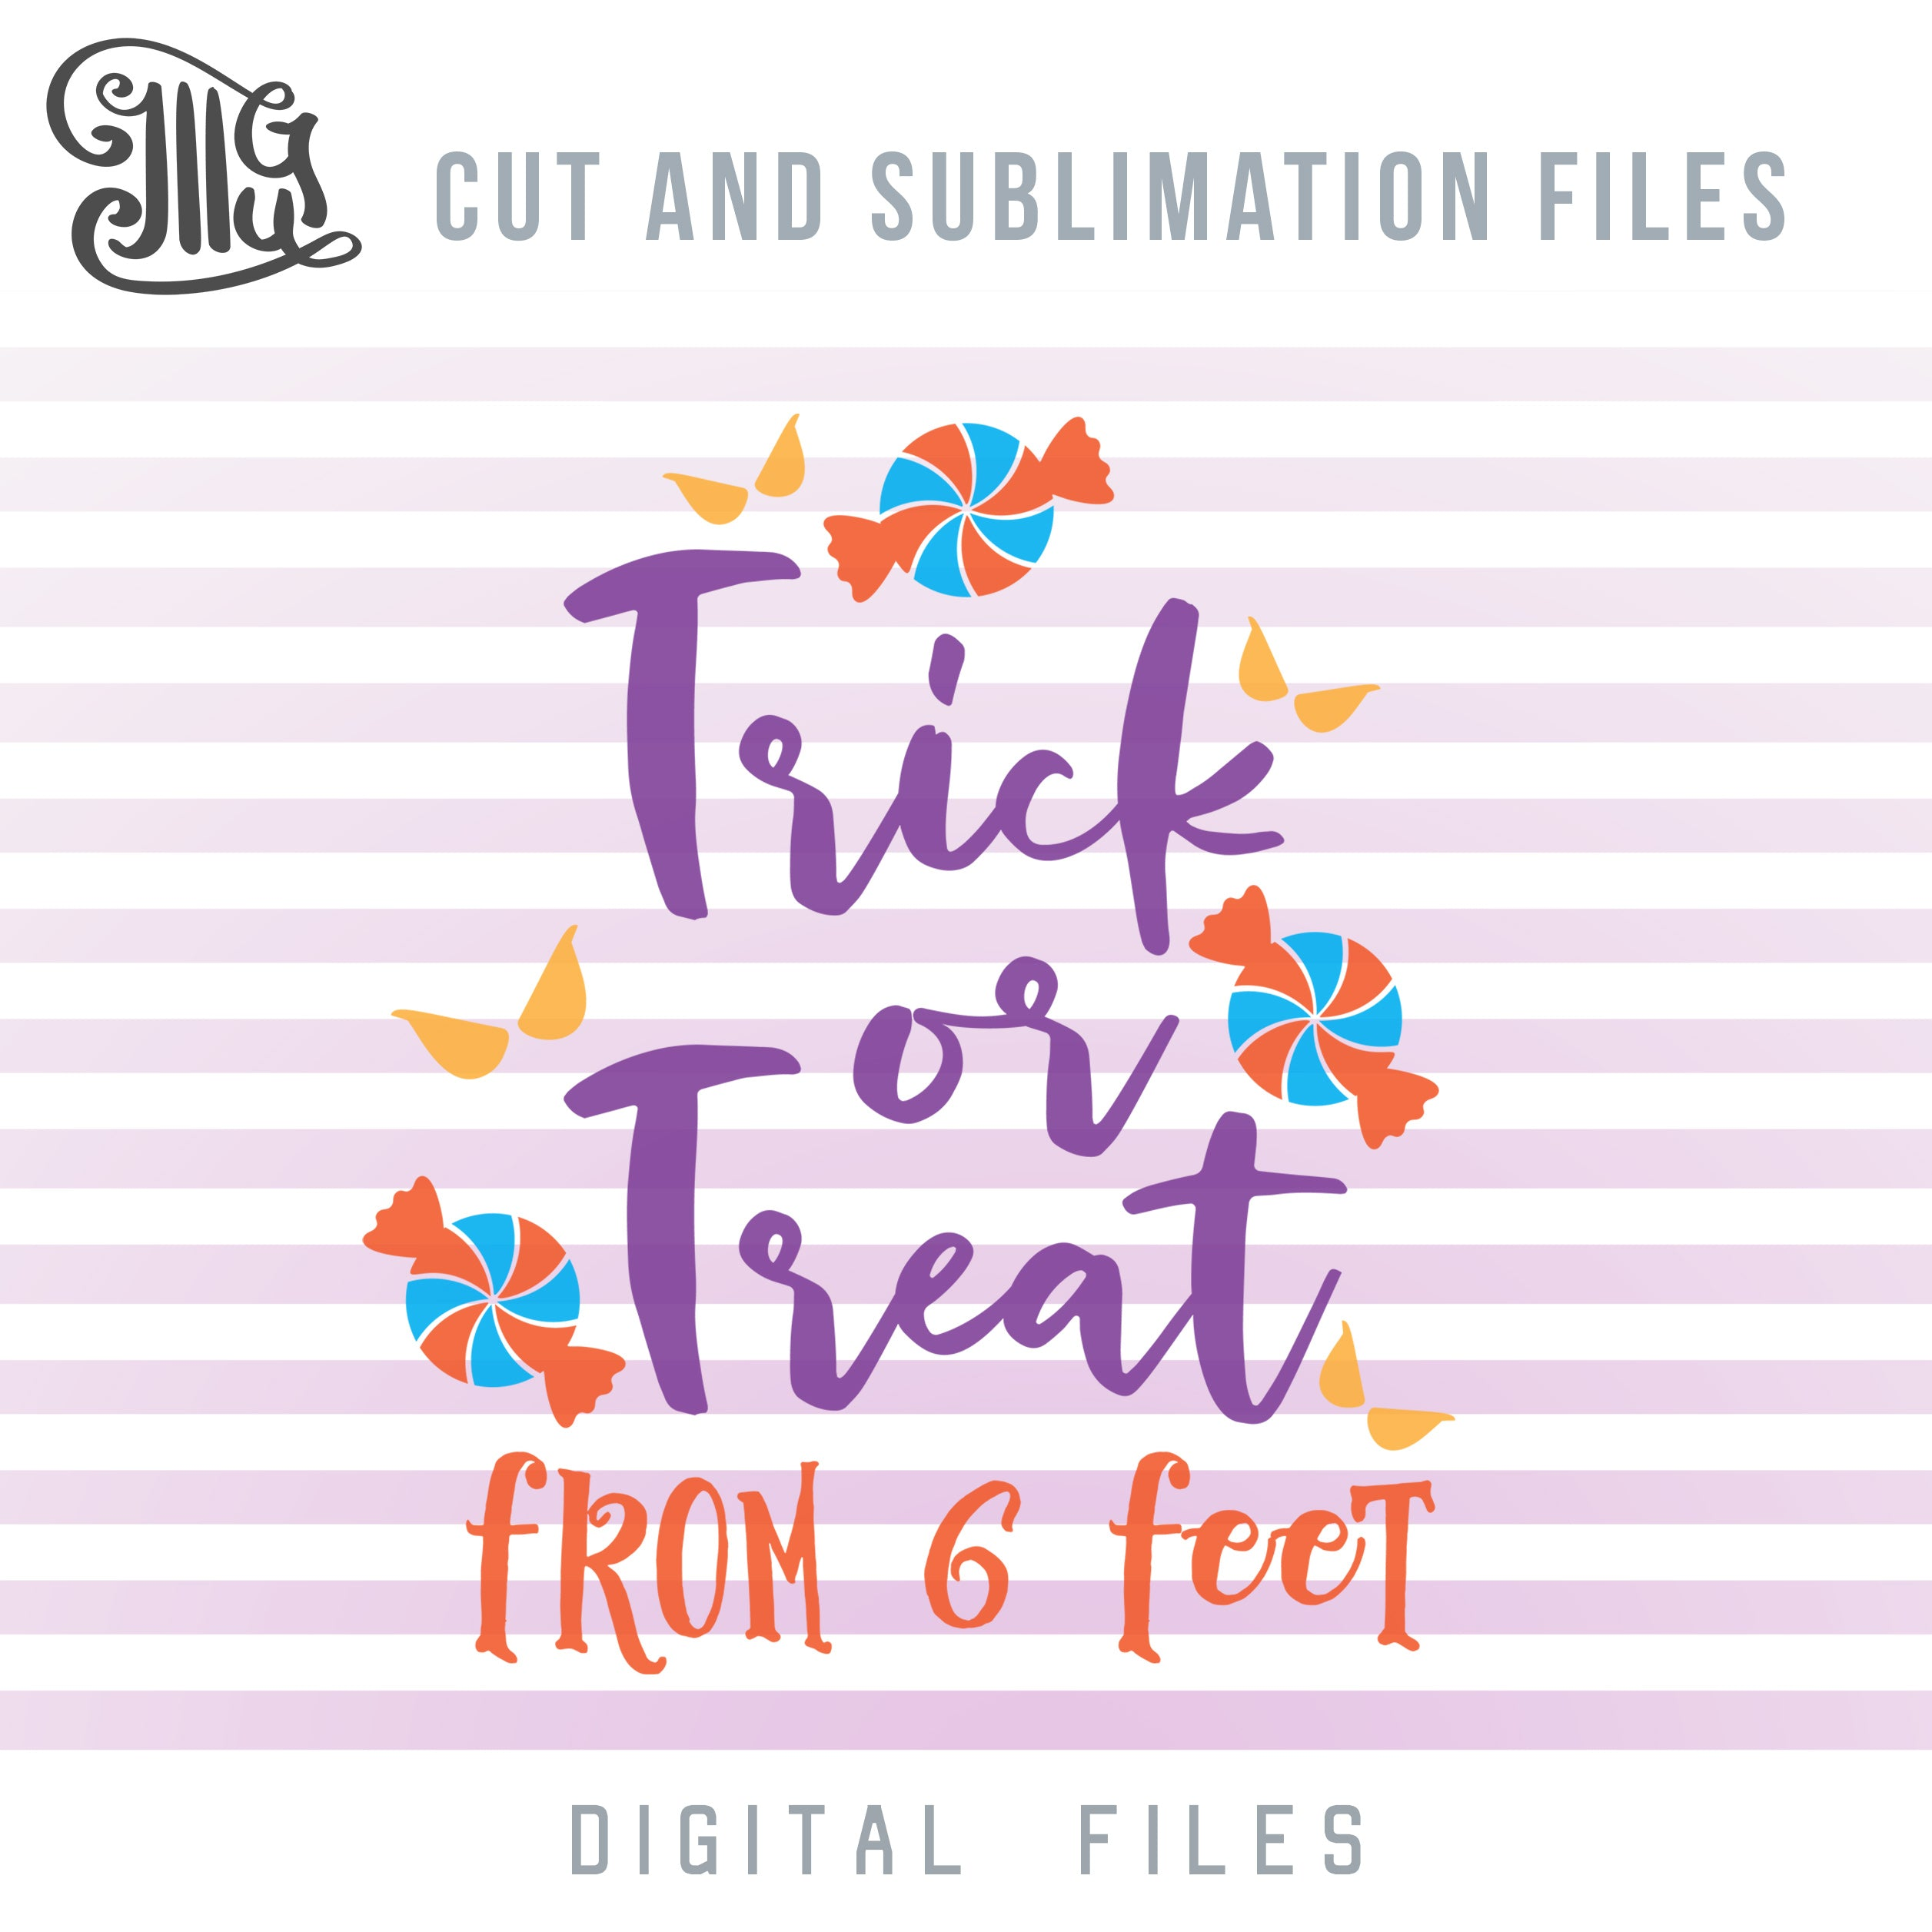 2020 Halloween SVG Cutting Files, Trick or Treat From 6 Feet Clipart, Halloween Quotes, Halloween Sayings, Halloween Candy Sublimation Images, Fall SVG-by Illustrator Guru